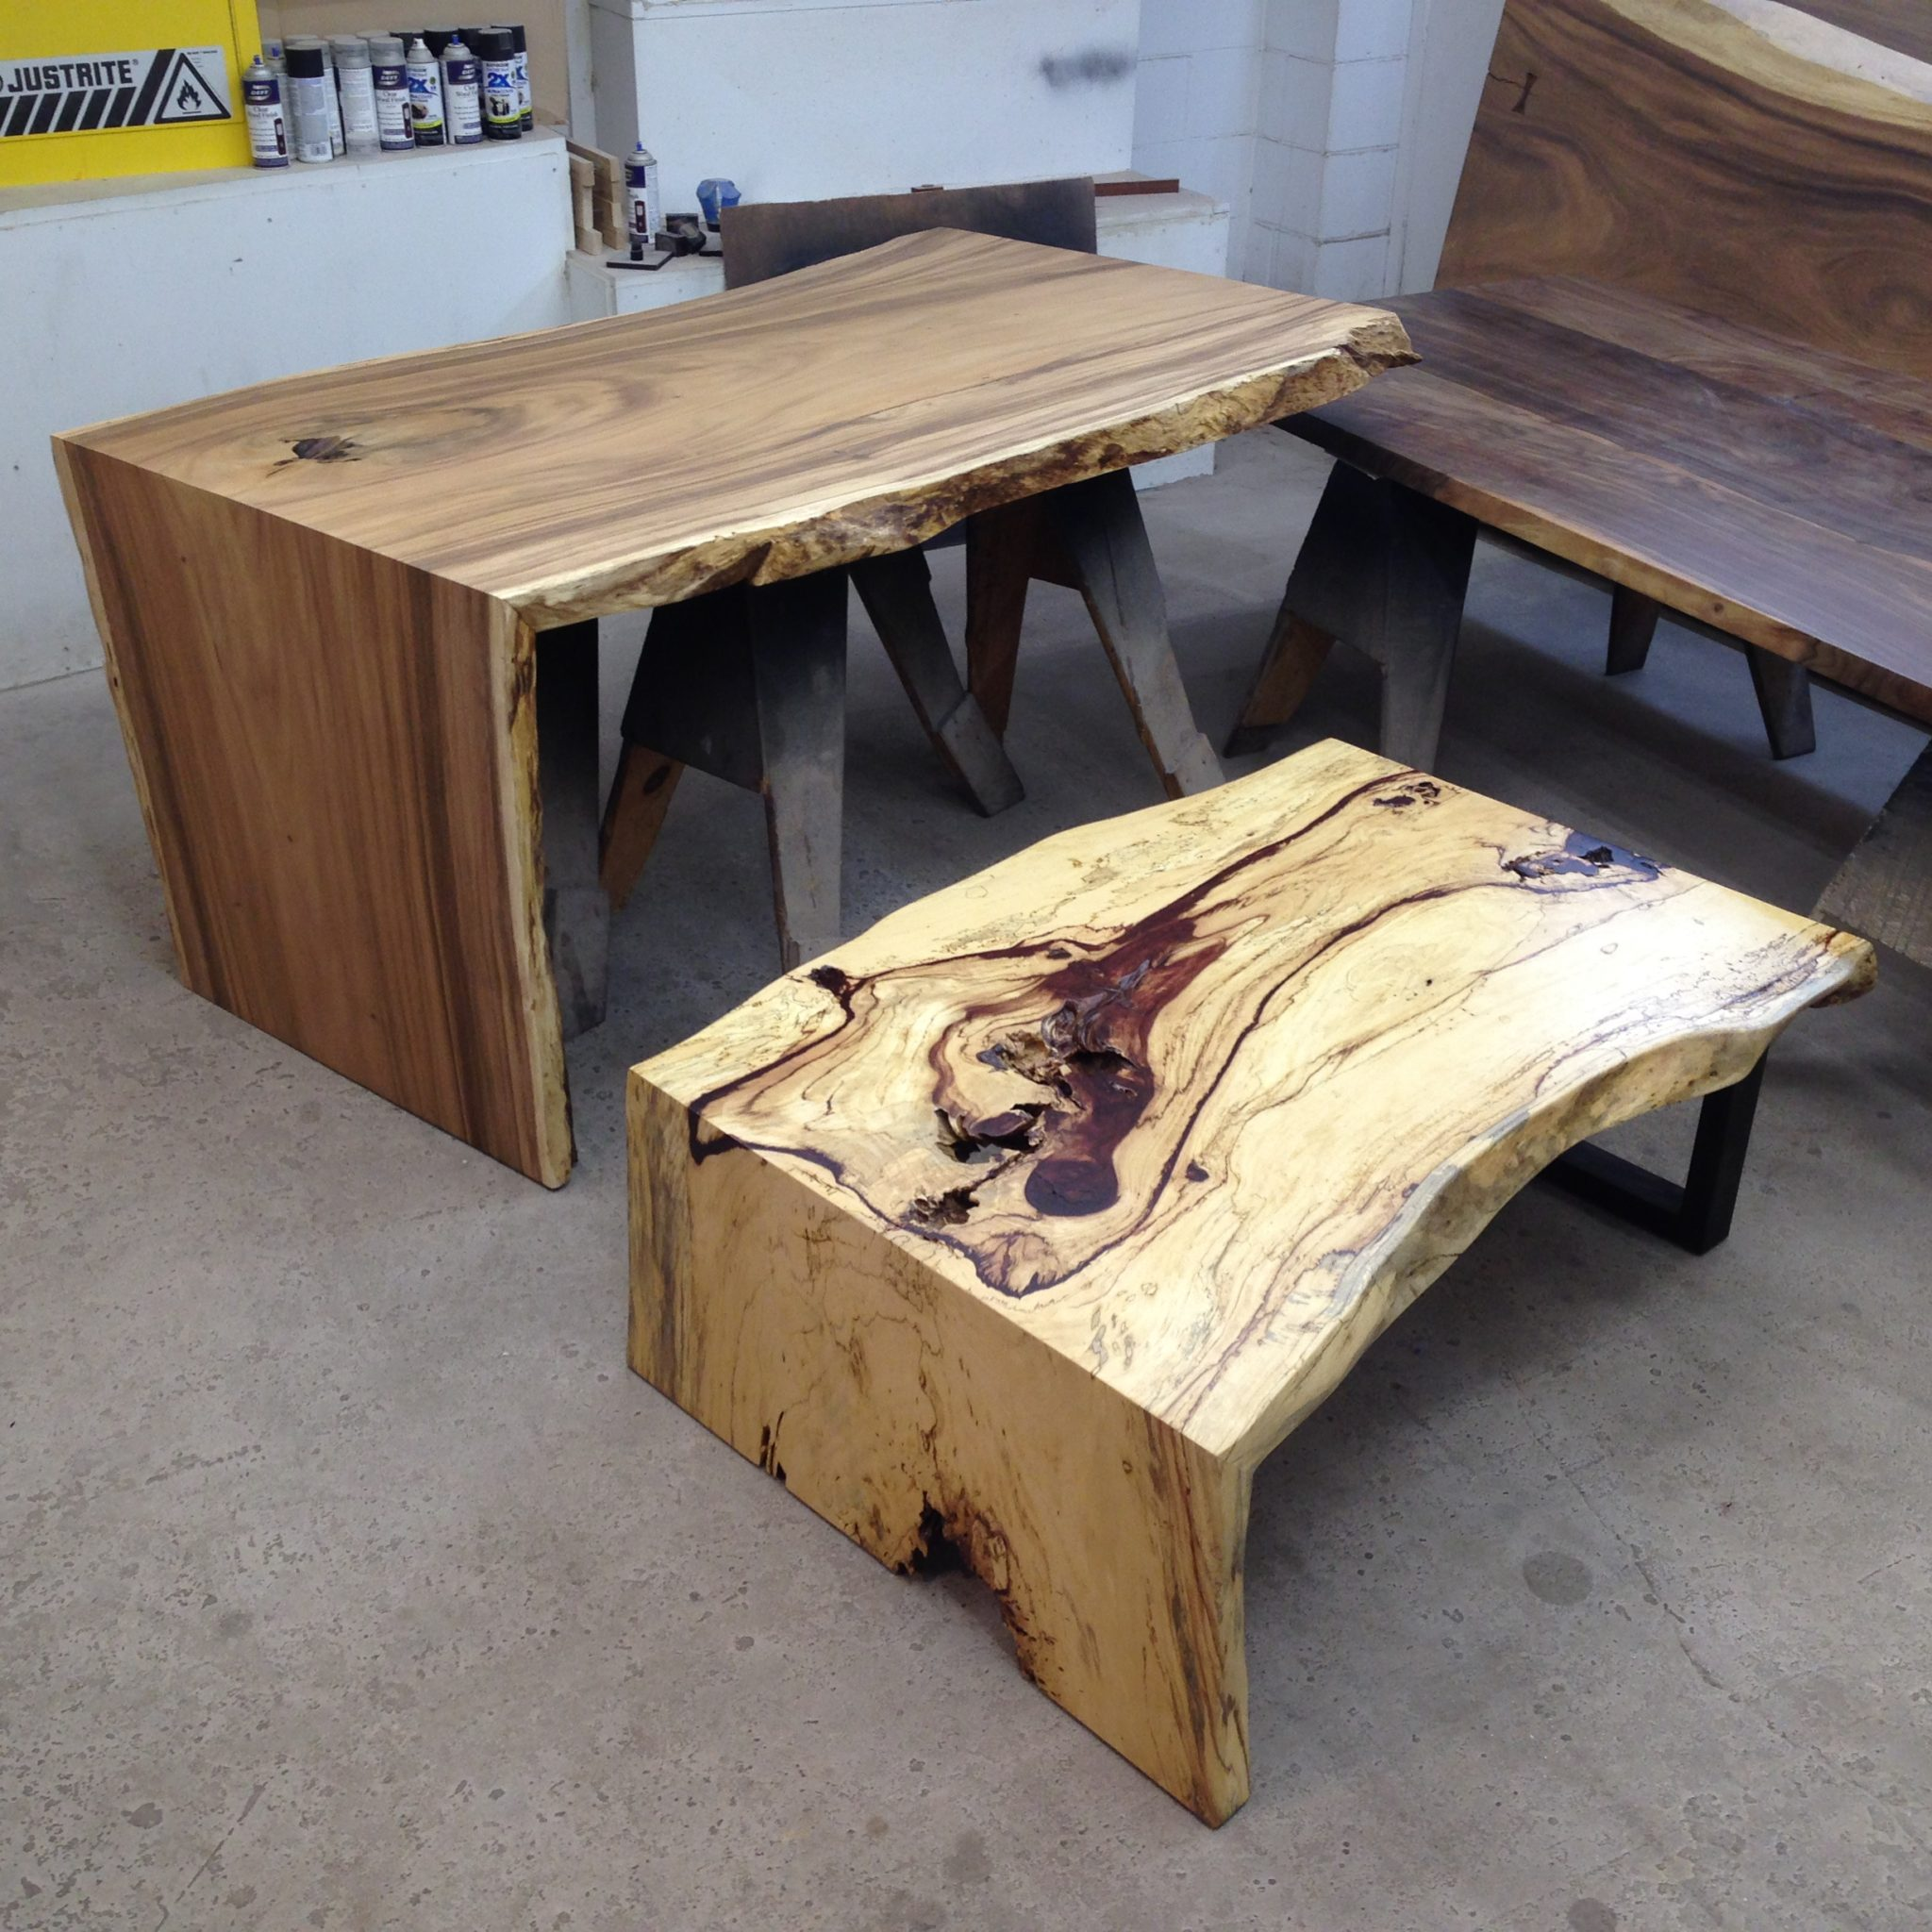 Custom Slab Tables Amp Live Edge Coffee Tables In San Diego CA The David Alan Collection